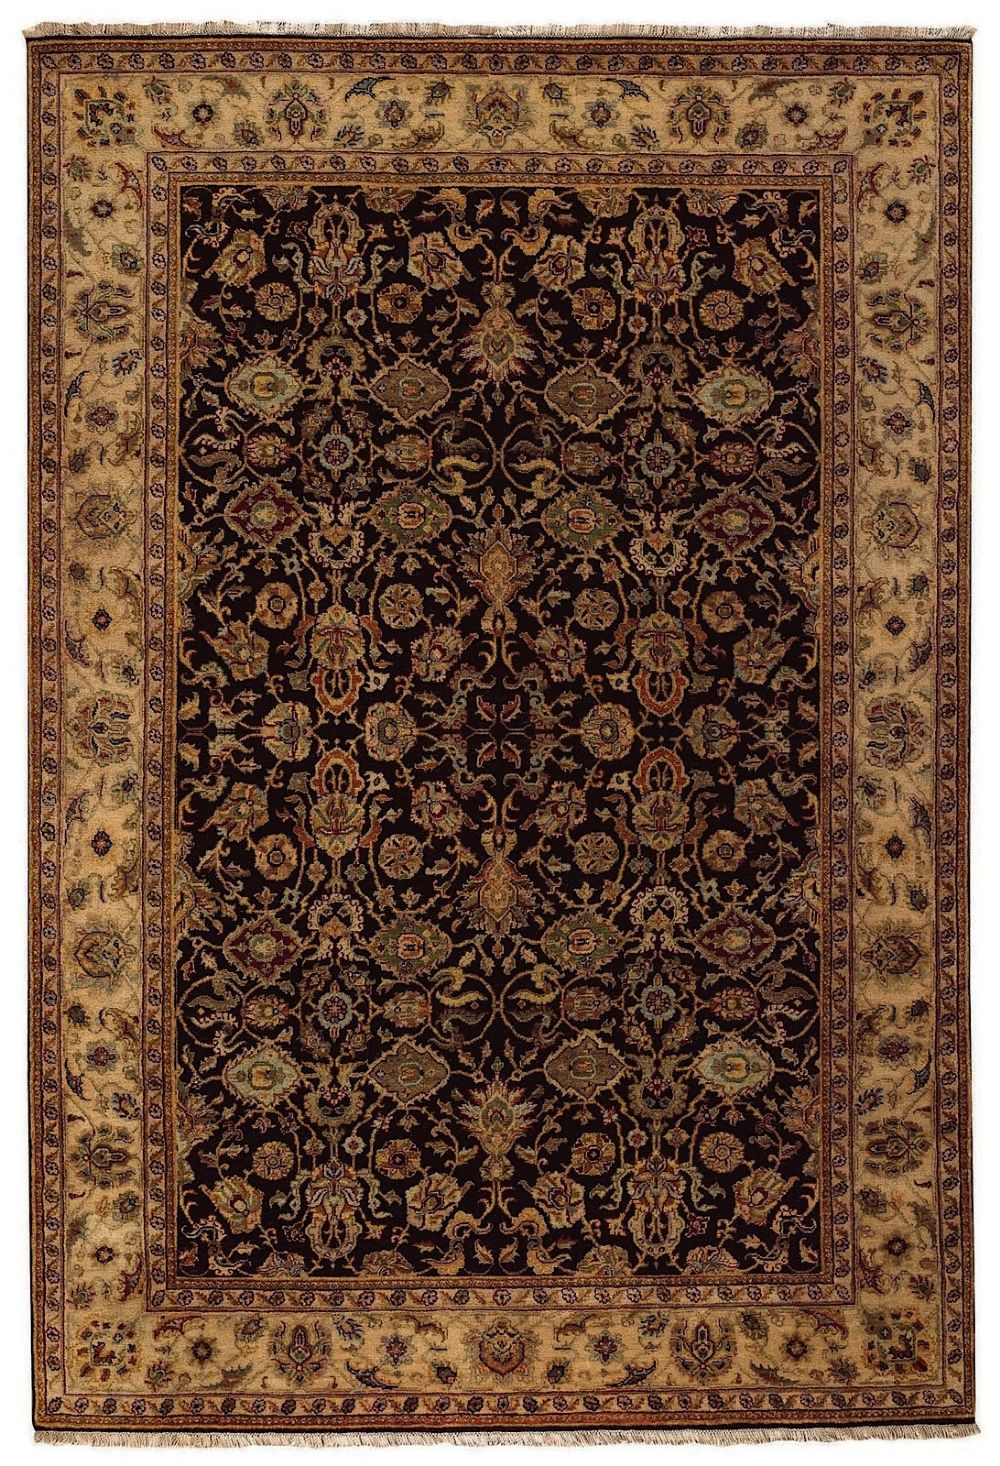 capel bella reserve-agra traditional area rug collection